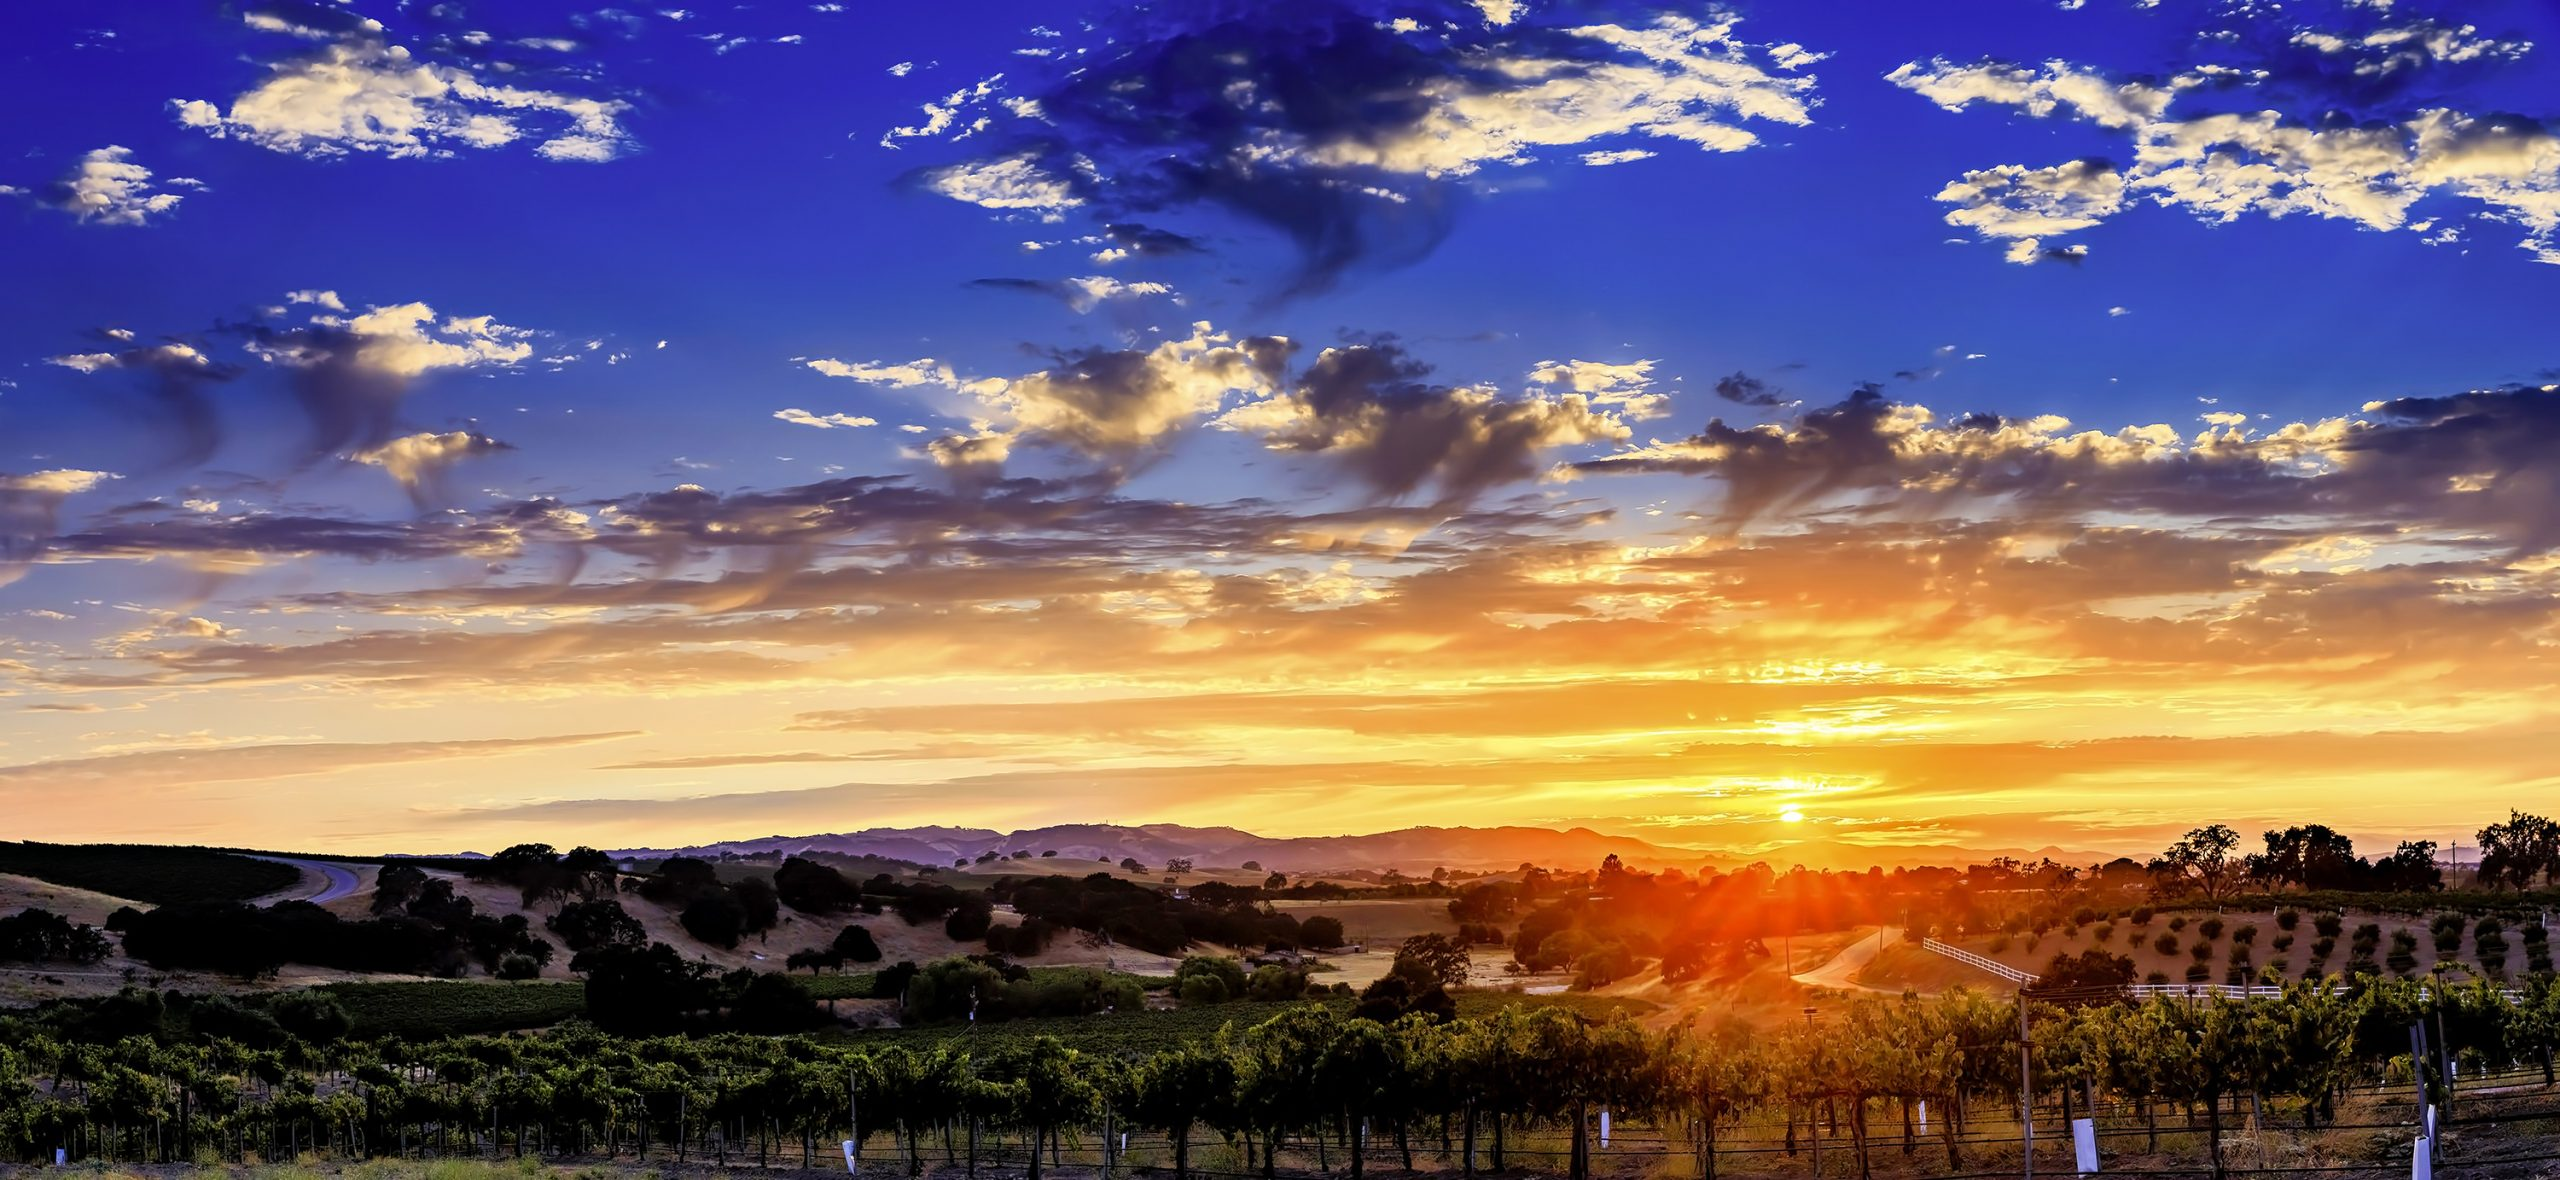 Sunset over vineyards in Paso Robles